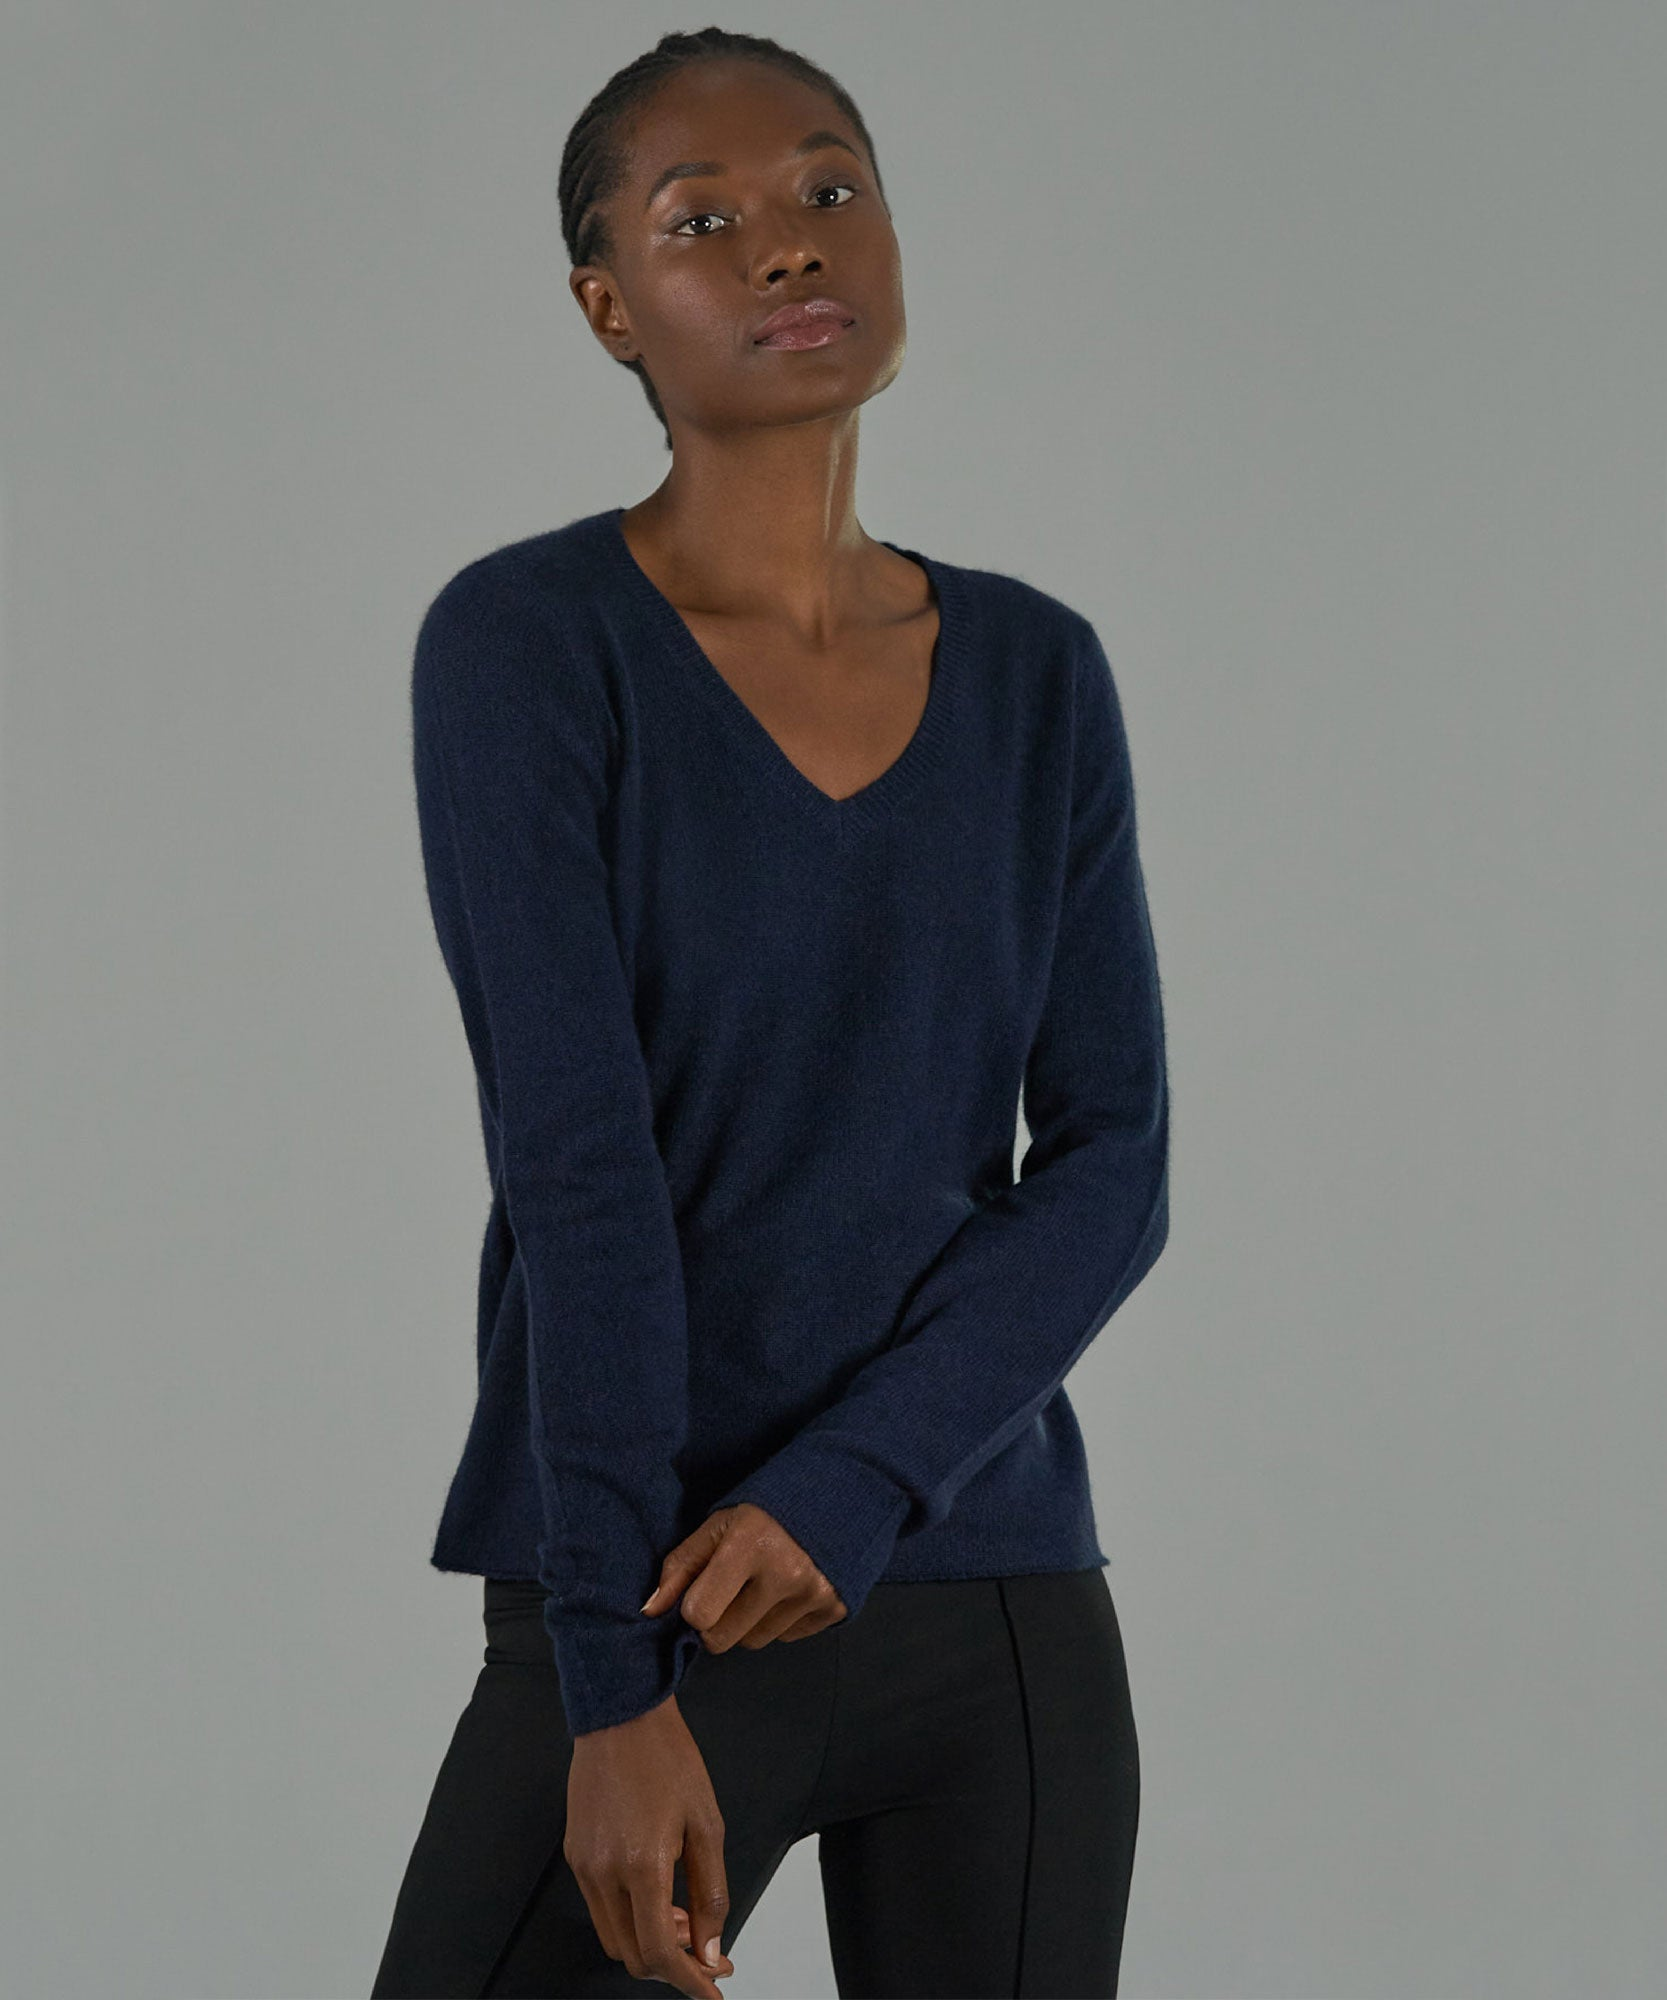 Midnight Cashmere V-Neck Sweater - Women's Luxe Sweater by ATM Anthony Thomas Melillo